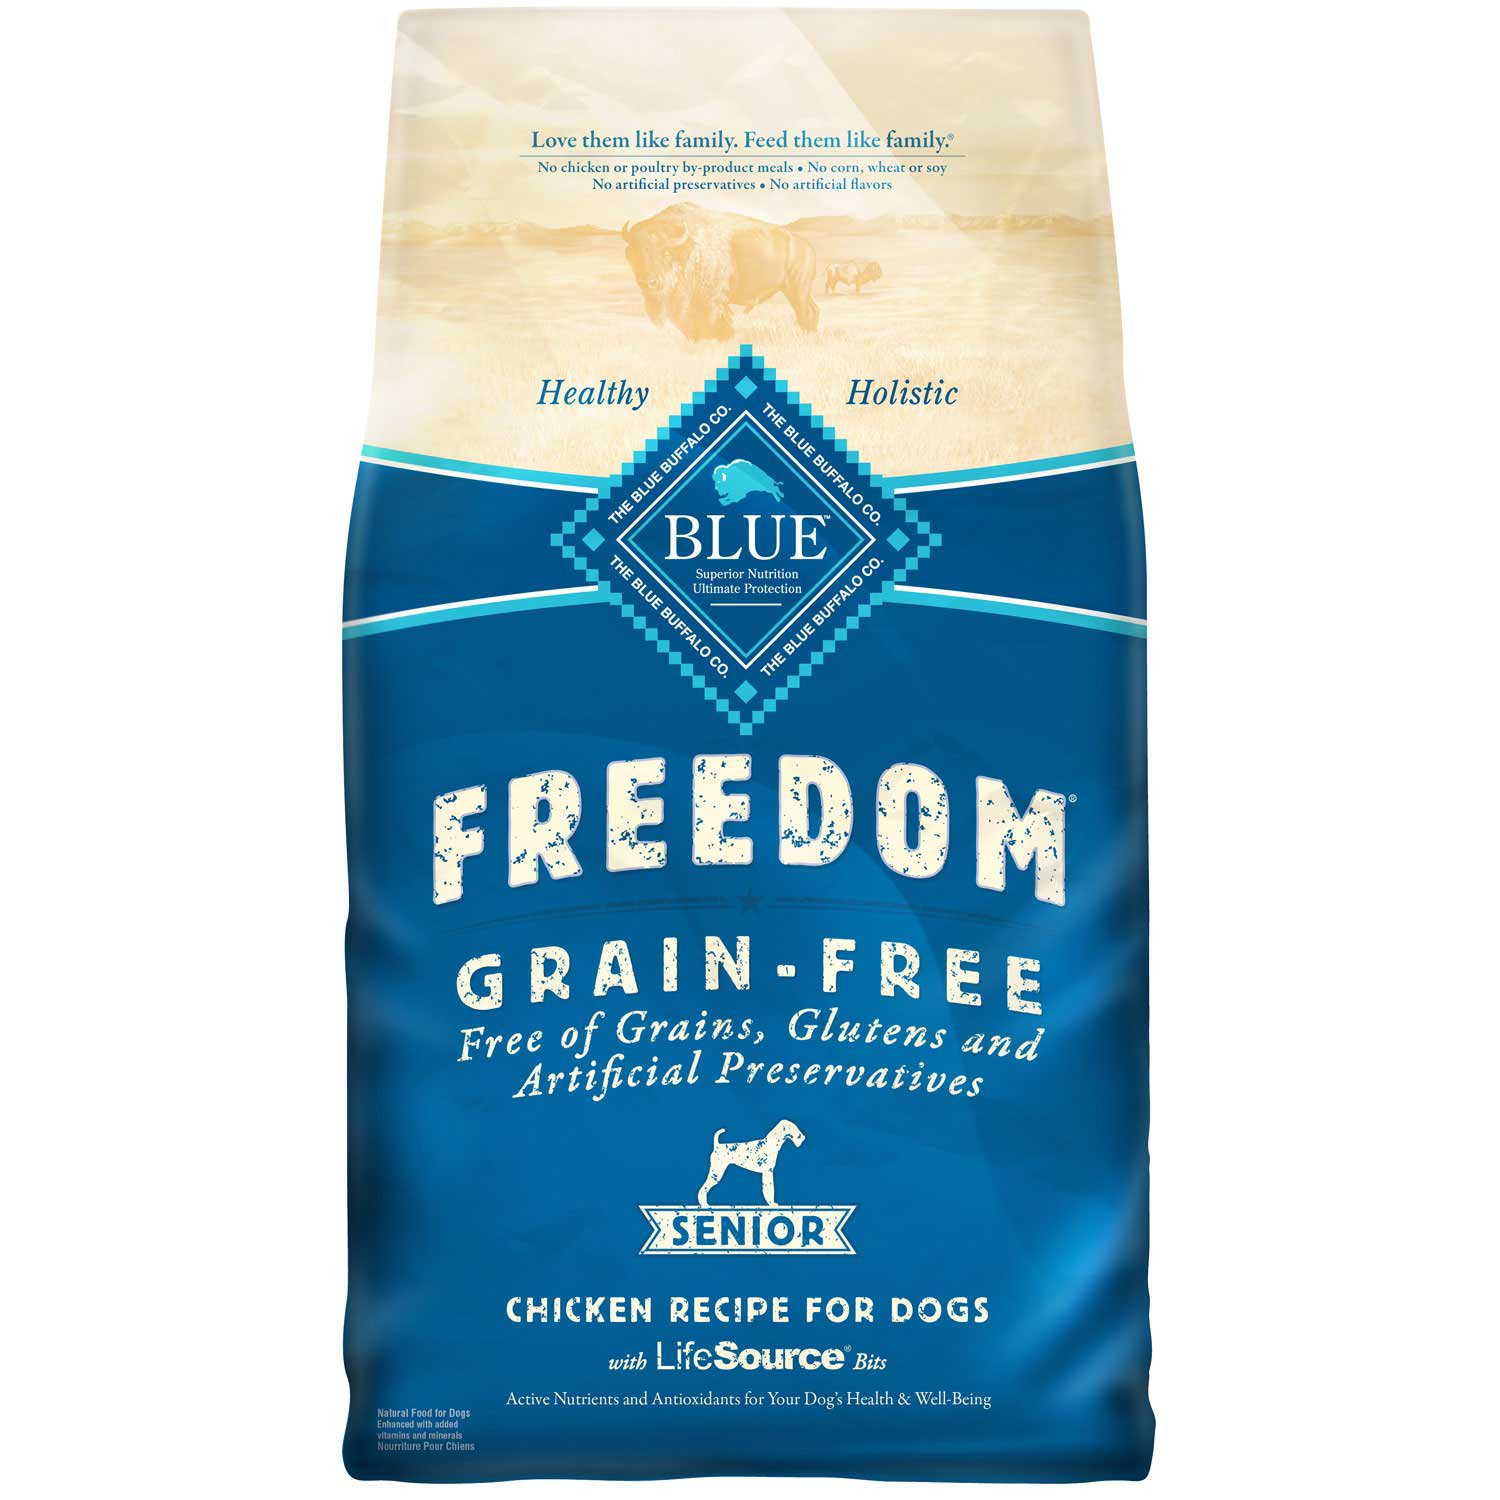 Buy Blue Buffalo basics Dry & Wet, Grain free, Small & Large breed, Puppy Food, High Protein Dog Foods with natural ingredients and primary flavors. Product Comparison The maximum number of products that can be compared is 4.